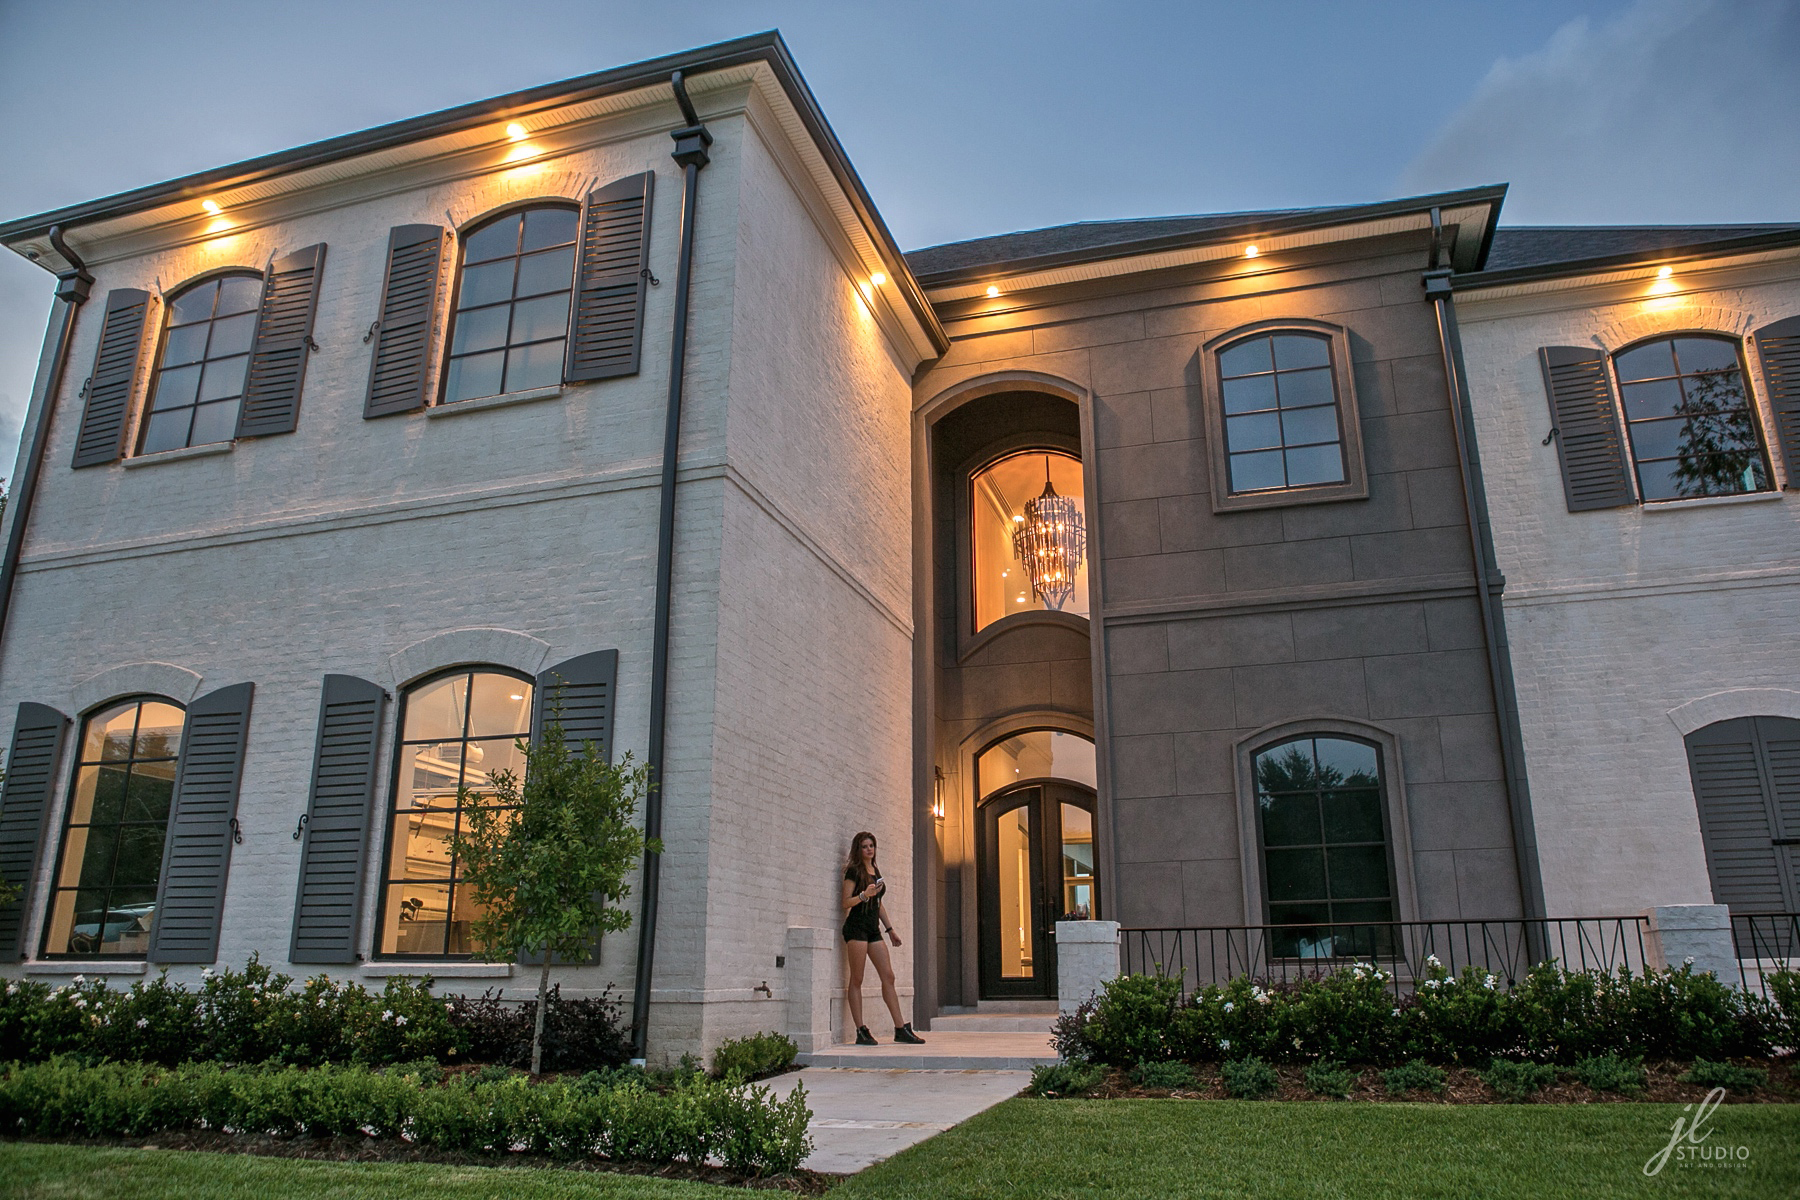 New construction home designed by Jacquelyn with JL Studio Designs. House built by Hoskins Homes.